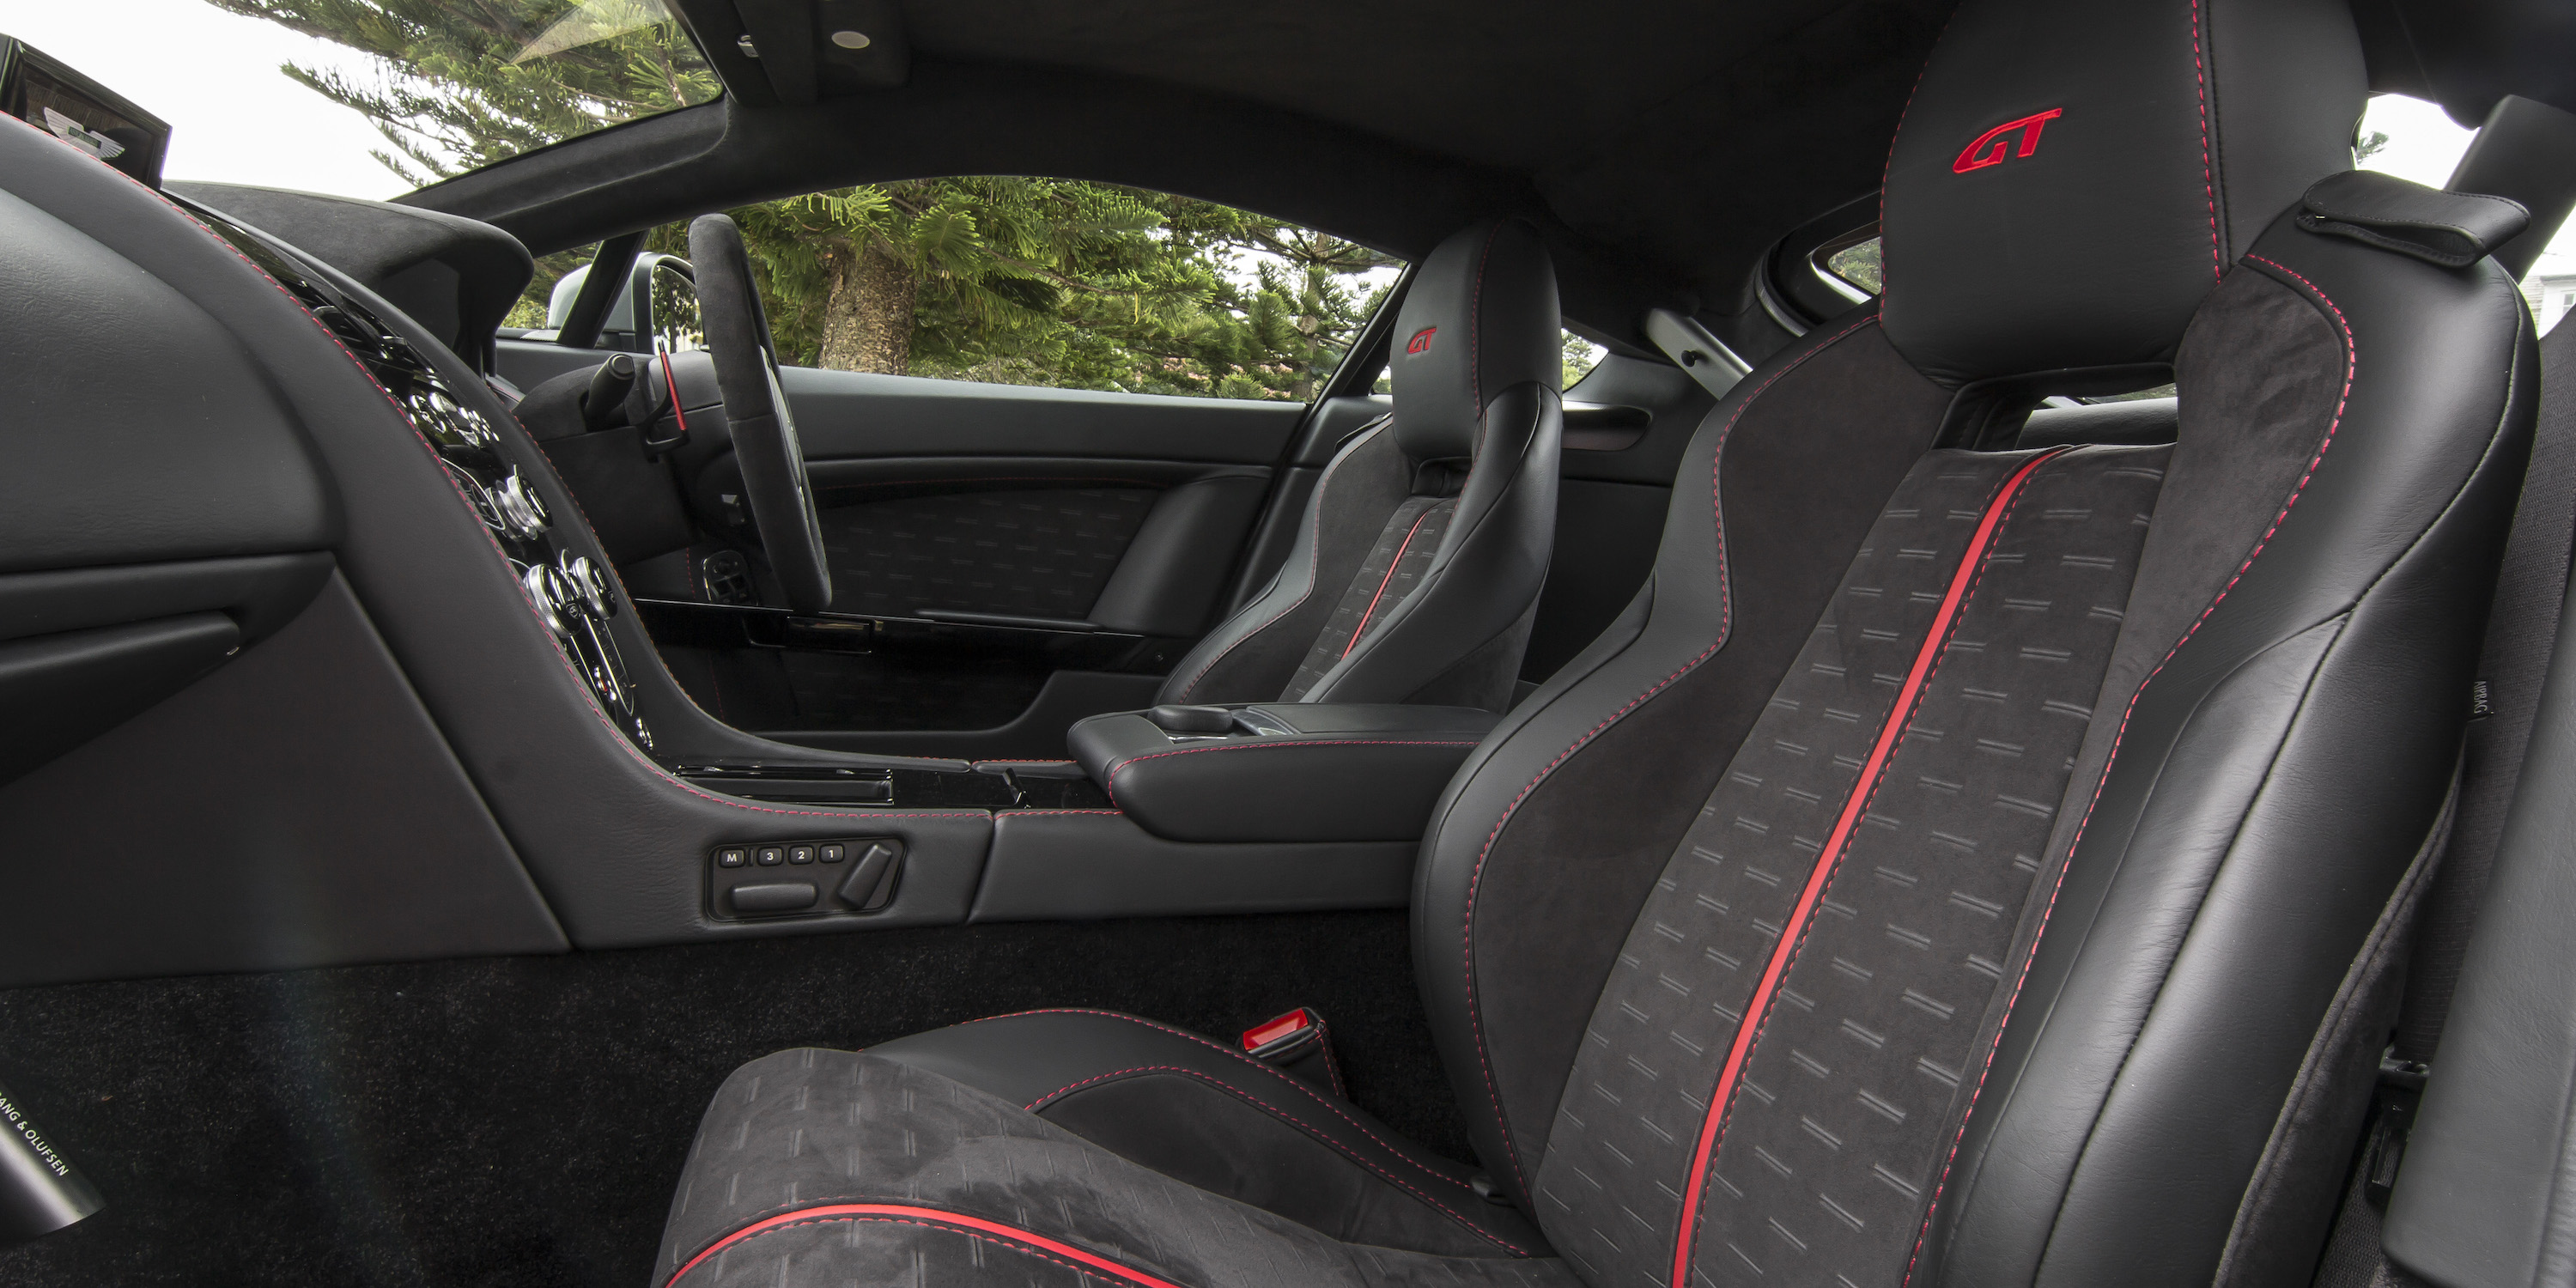 2016 Aston Martin Vantage Gt Front Seats Interior (Photo 7 of 25)